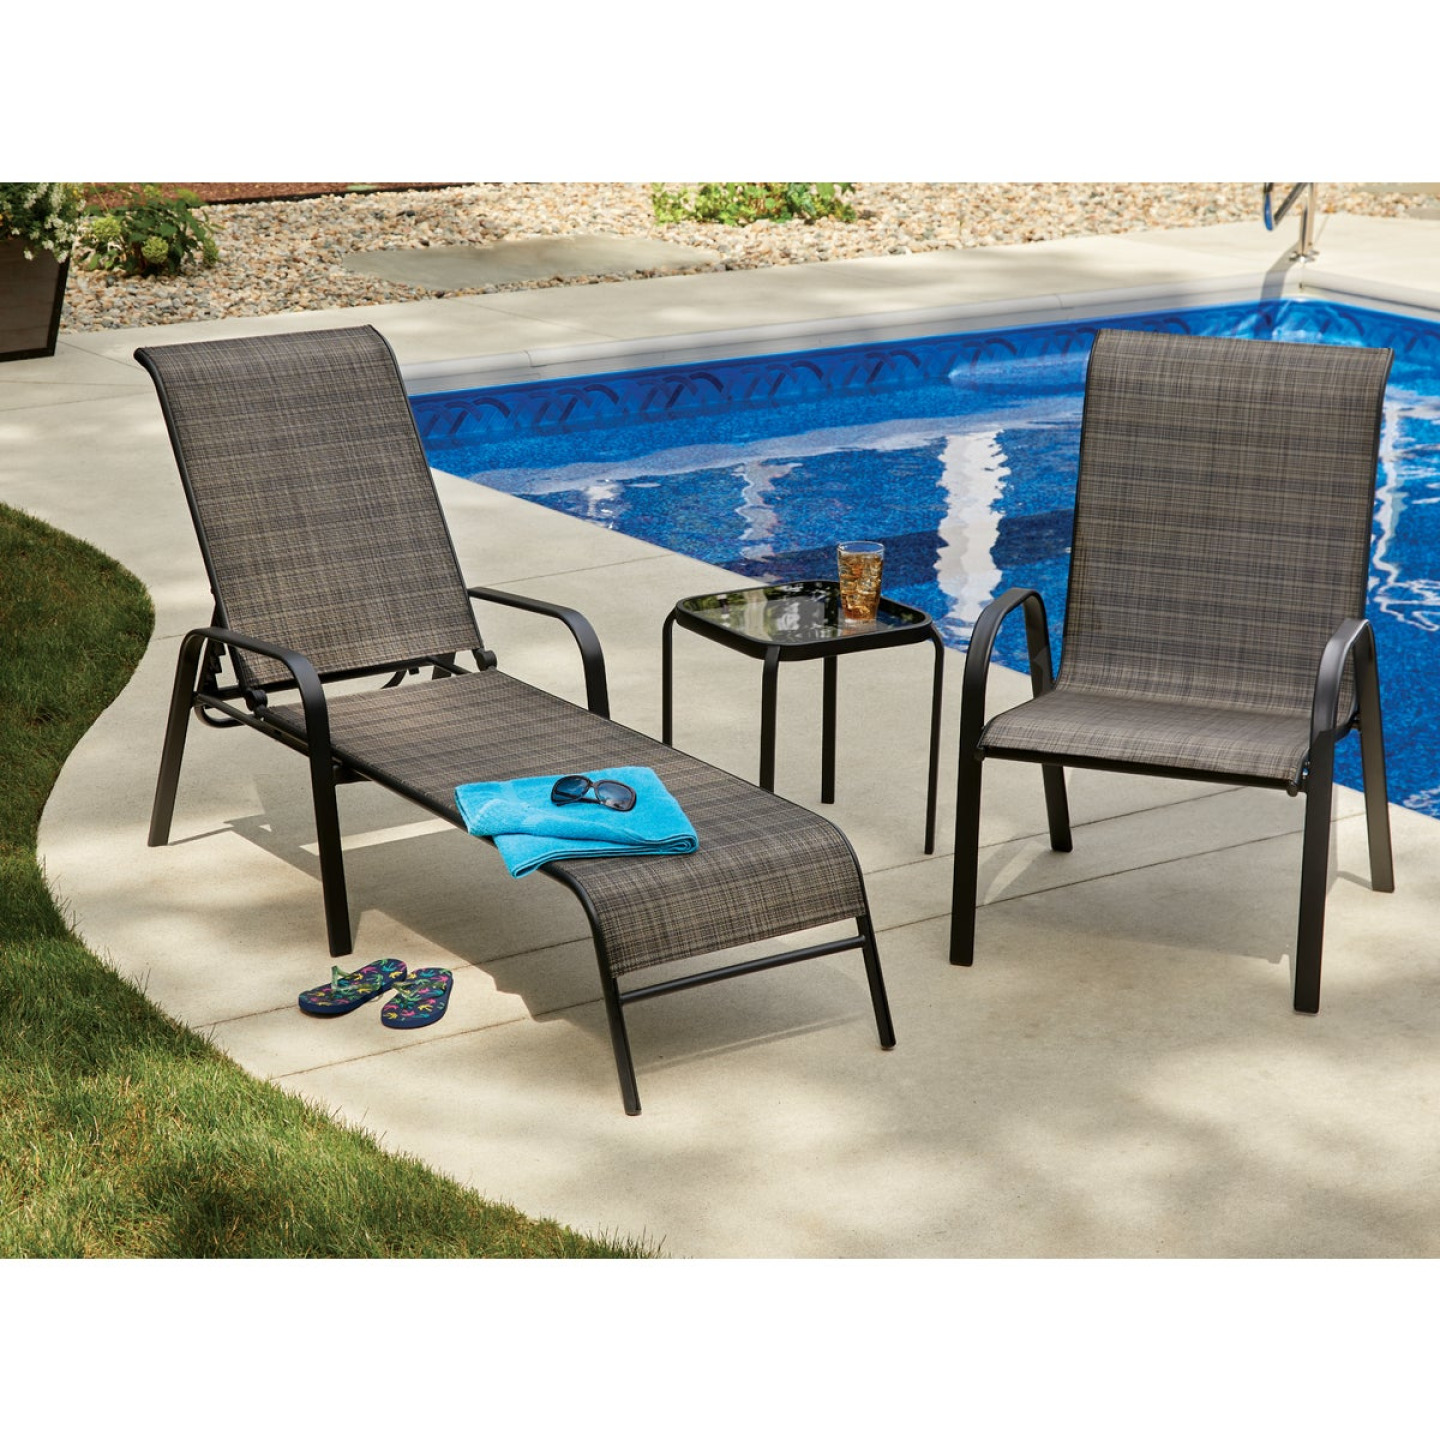 Outdoor Expressions Windsor Chaise Lounge Image 4